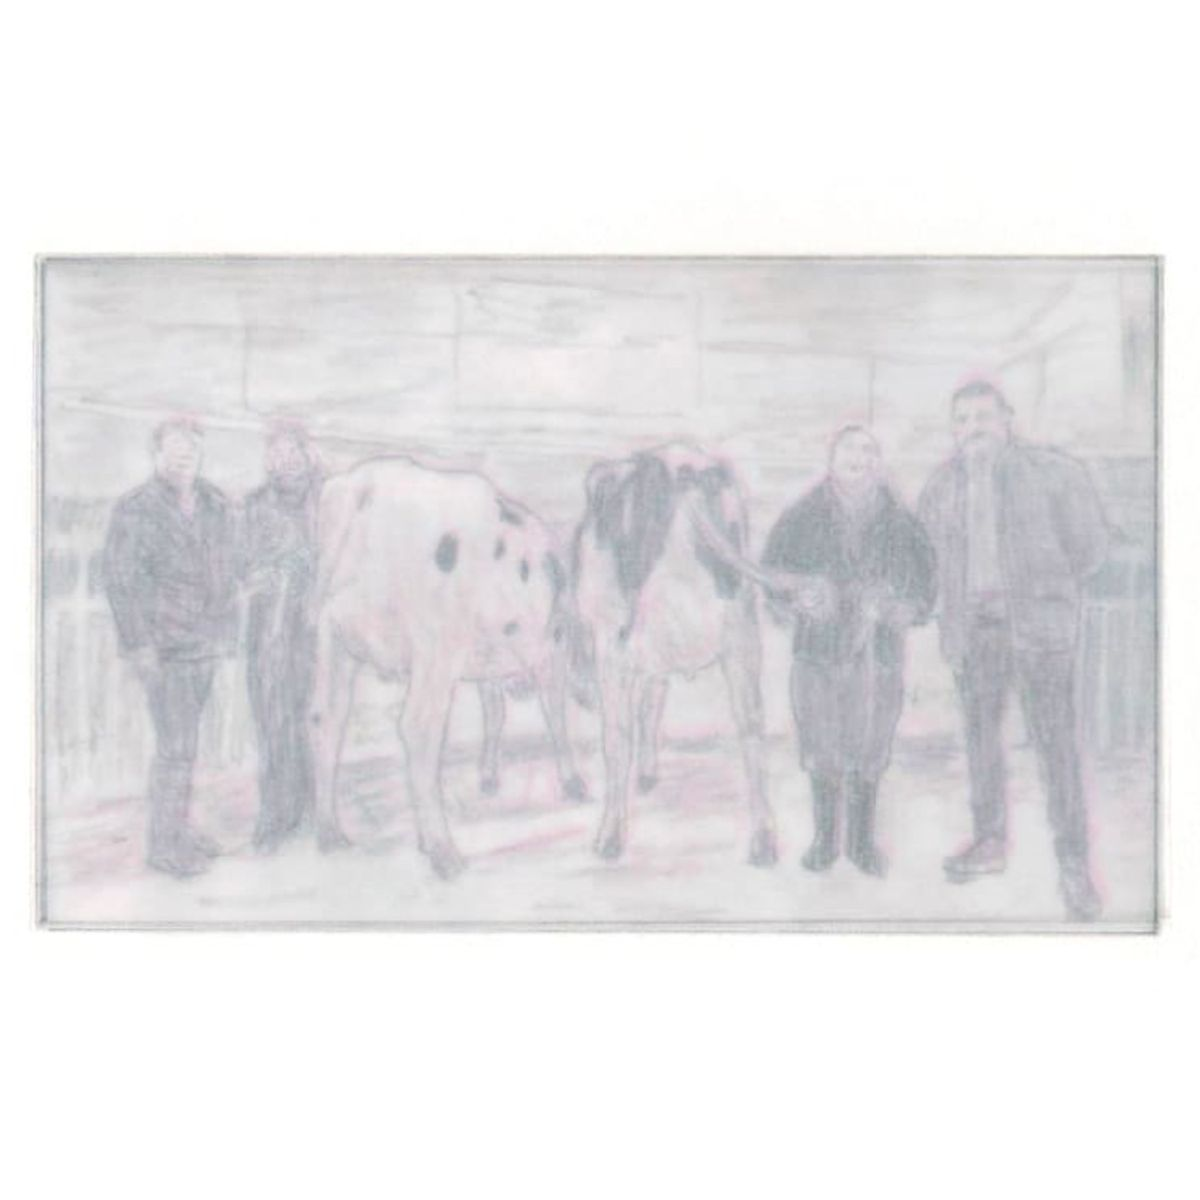 """""""Dairy cow takes red rosette"""" by Philip M. Jonathan, mnoermark (2 of 2)"""